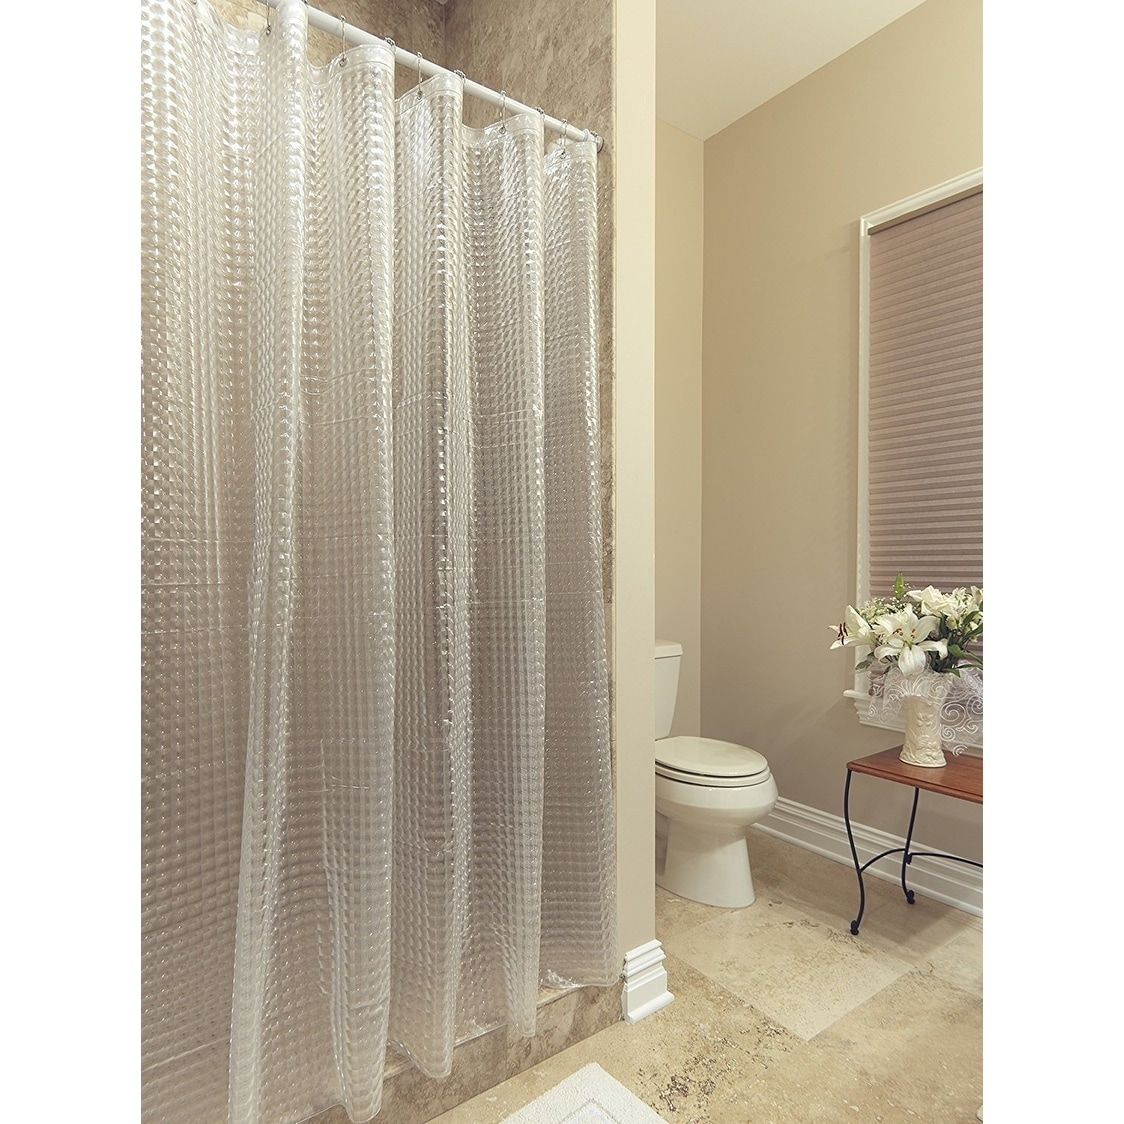 Shop Ottomanson Durable Heavy Duty 10 Gauge Clear Shower Curtain